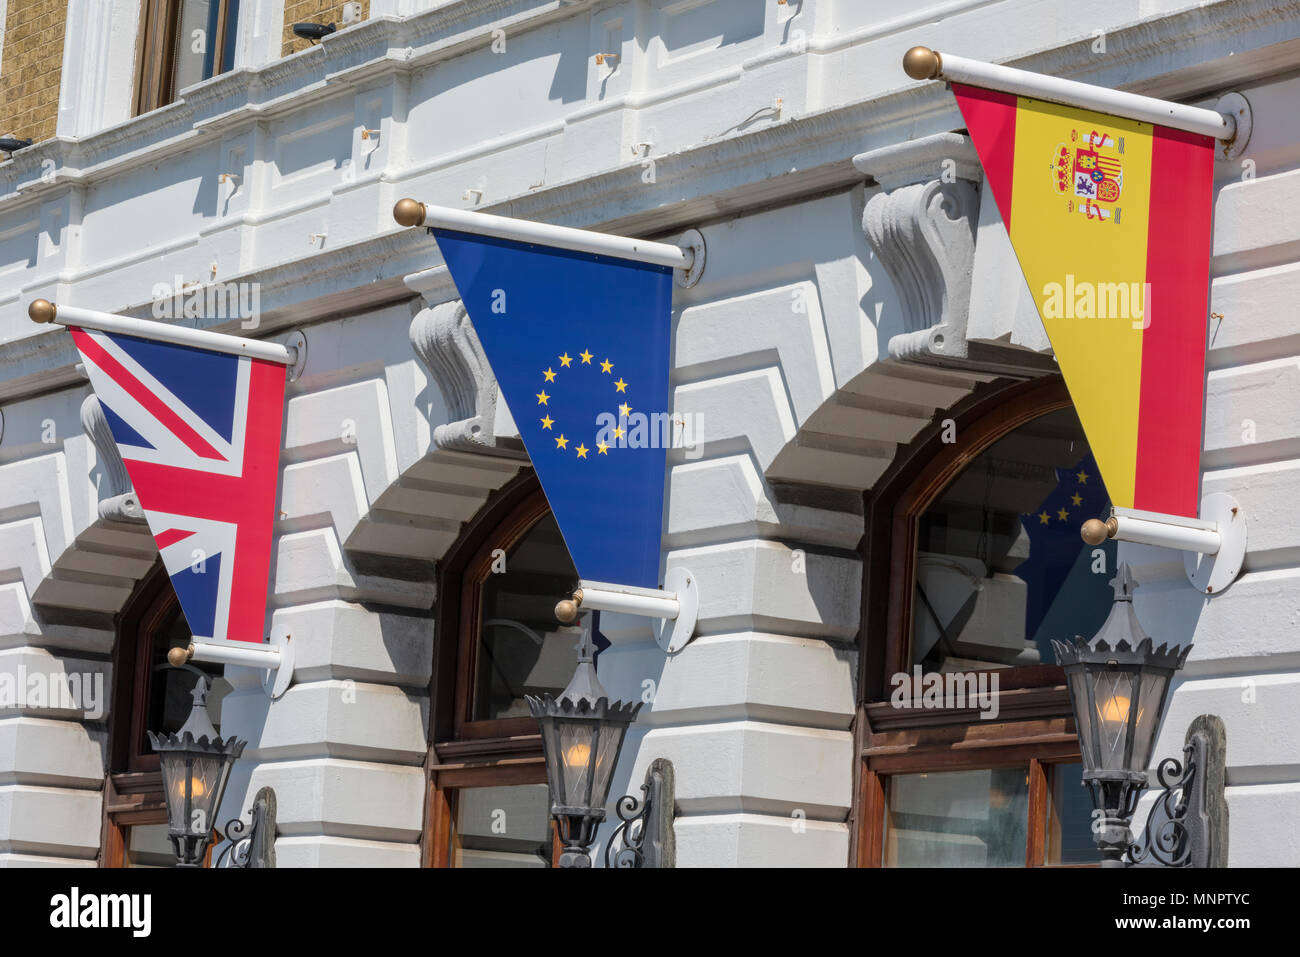 Spanish, british and European flags all flying together outside of a large classically designed building with arches. flagpoles and European emblems. - Stock Image